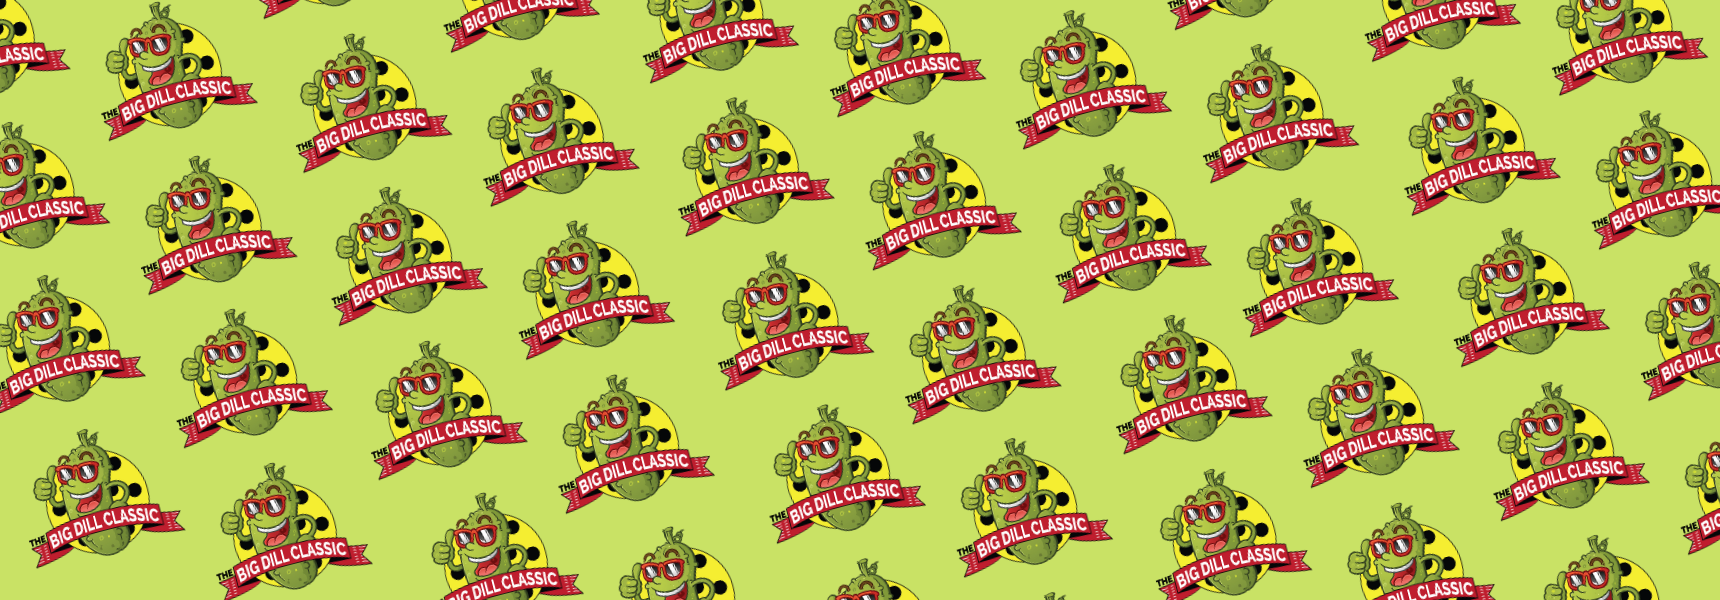 Graphic background with repeating Big Dill Classic logo